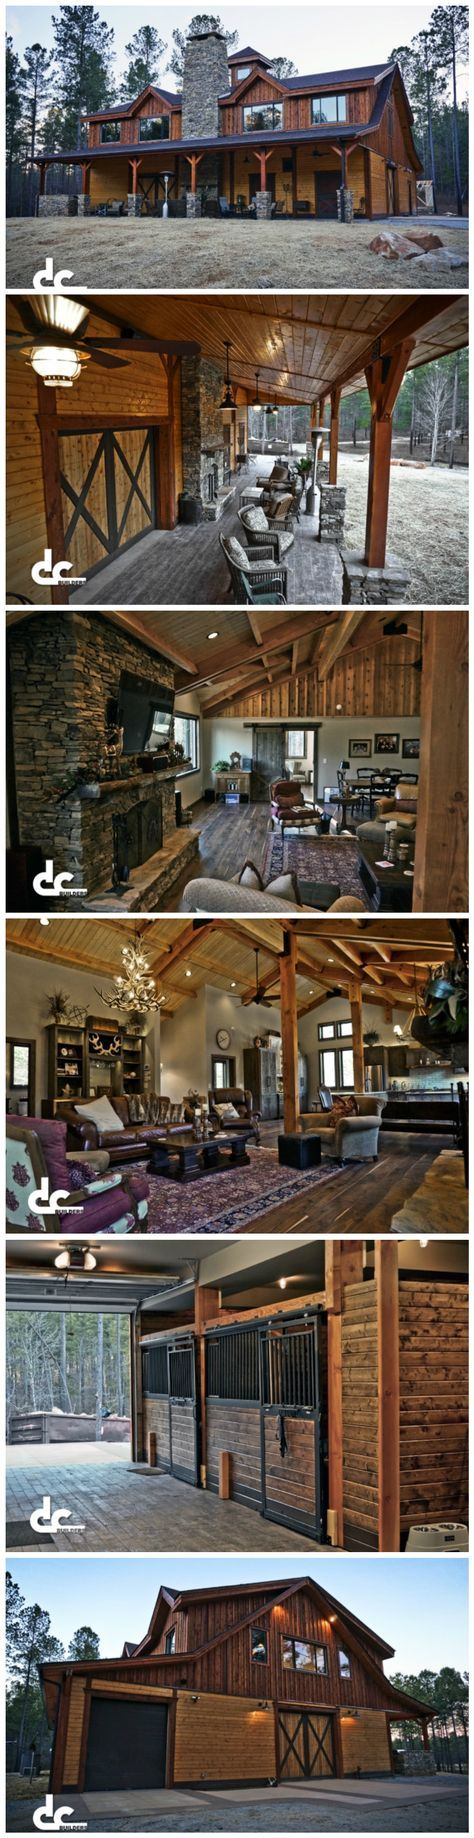 17 best ideas about barn with living quarters on pinterest for Shop with living quarters